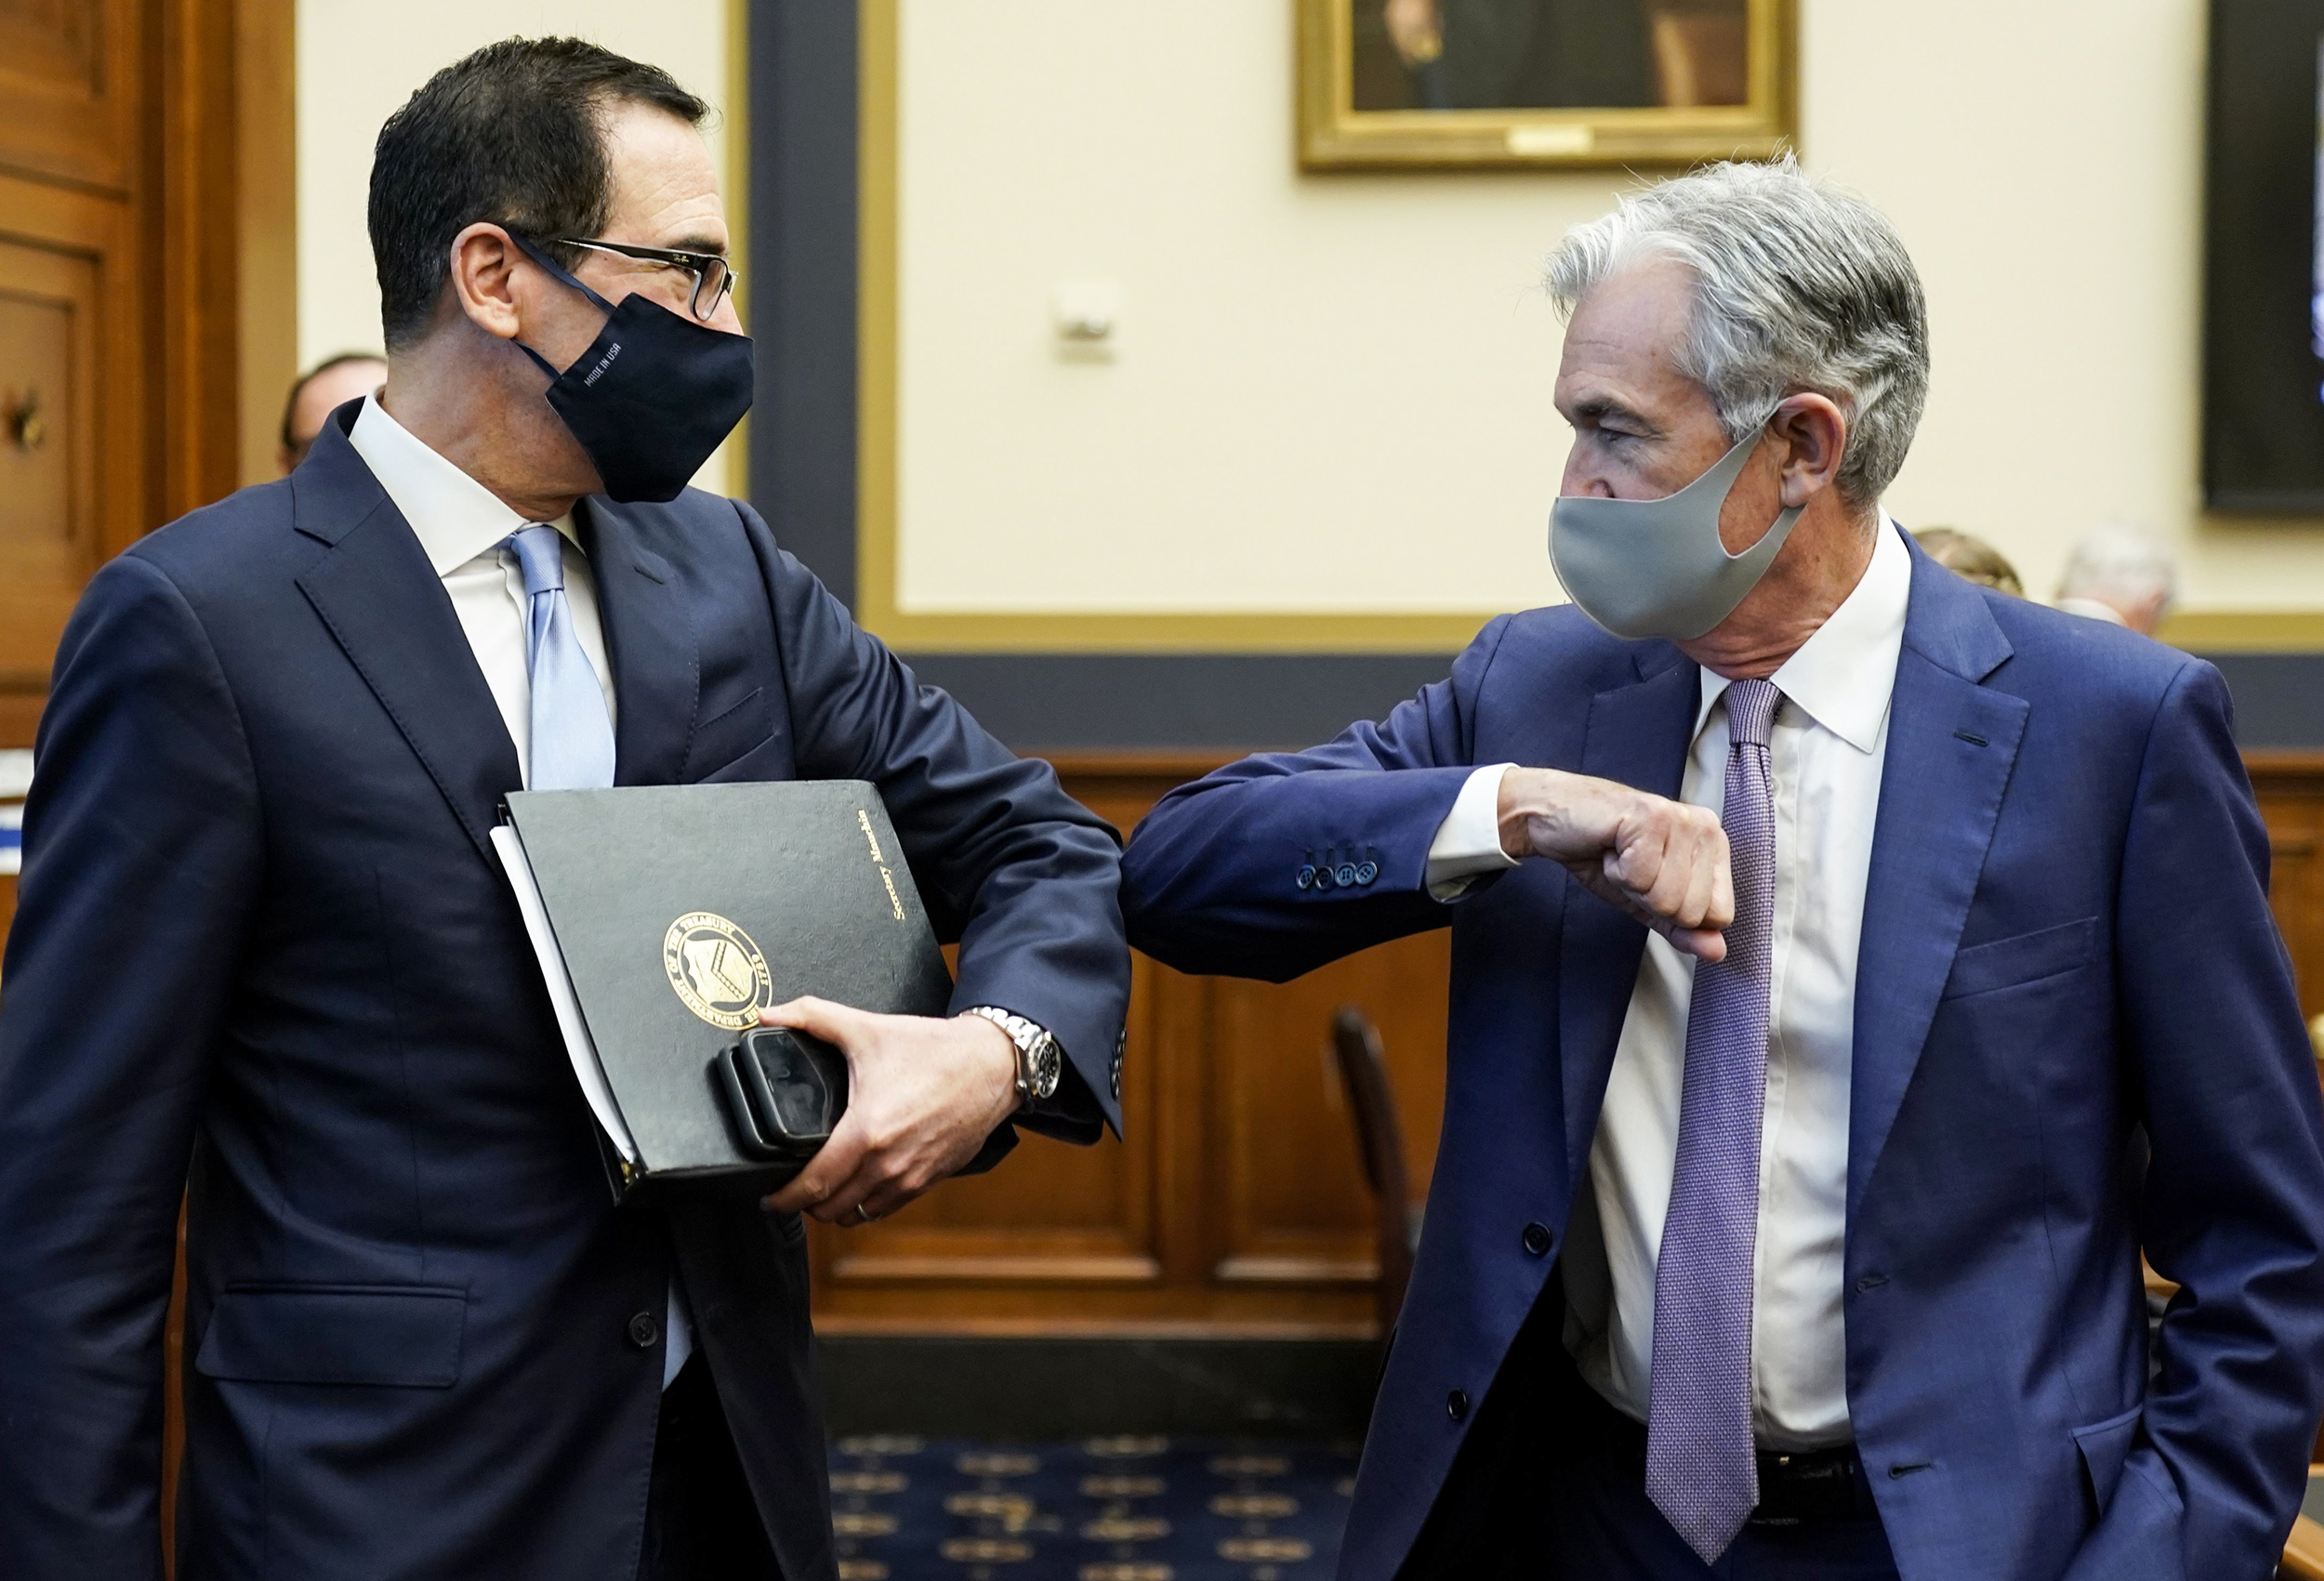 U.S. needs a vaccine and more fiscal aid before economy can fully recover, say Mnuchin and Powell